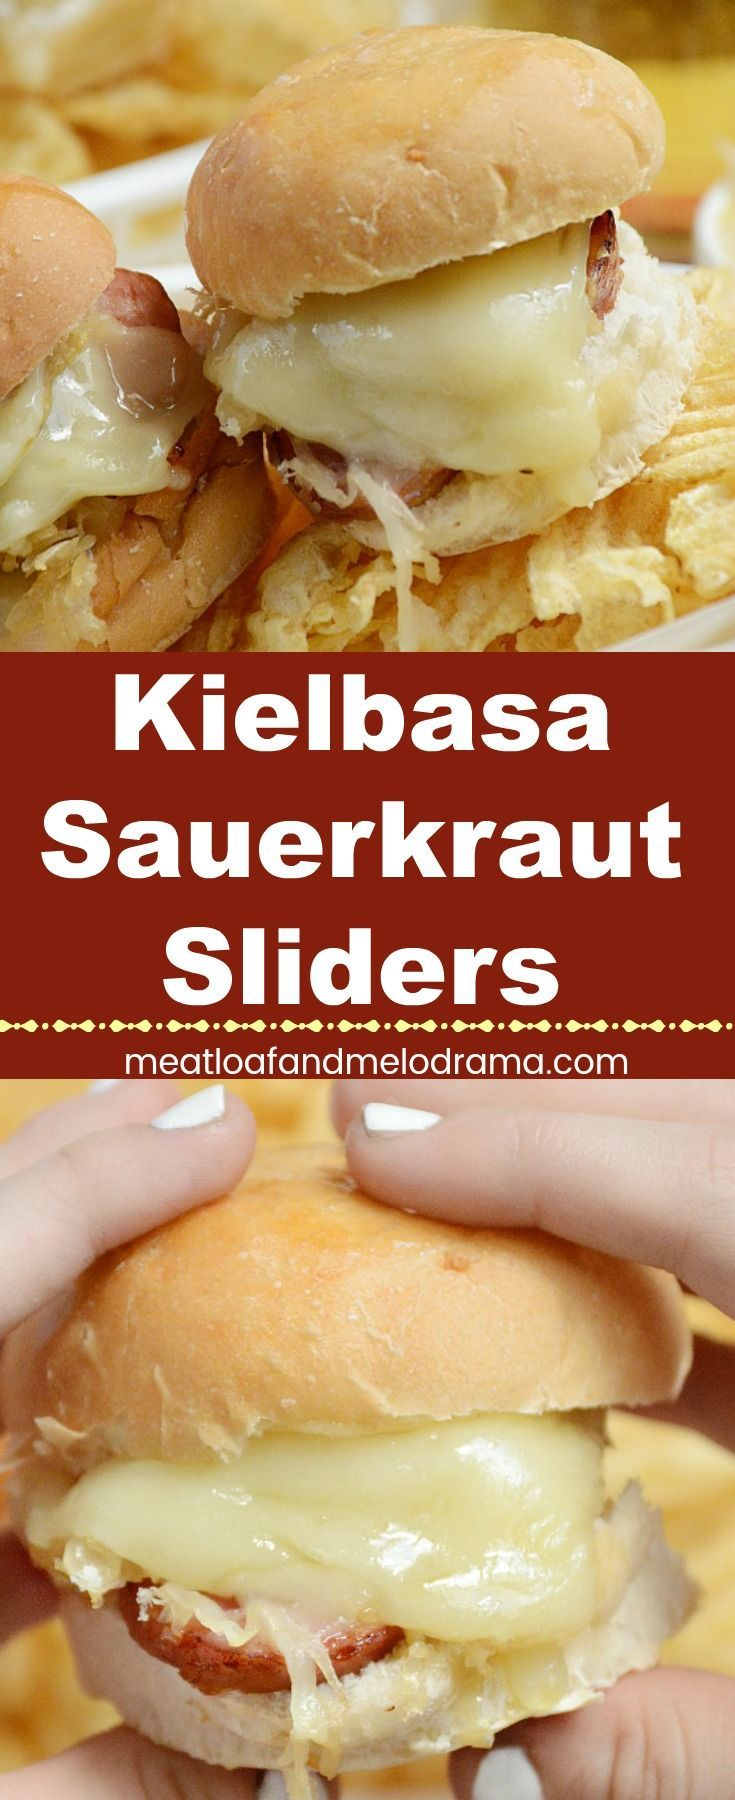 Kielbasa Sauerkraut Sliders -  Mini sandwiches made with smoked Polish sausage, sauerkraut and melted provolone cheese. Perfect for an easy dinner or game day food! from Meatloaf and Melodrama #easydinner #gameday